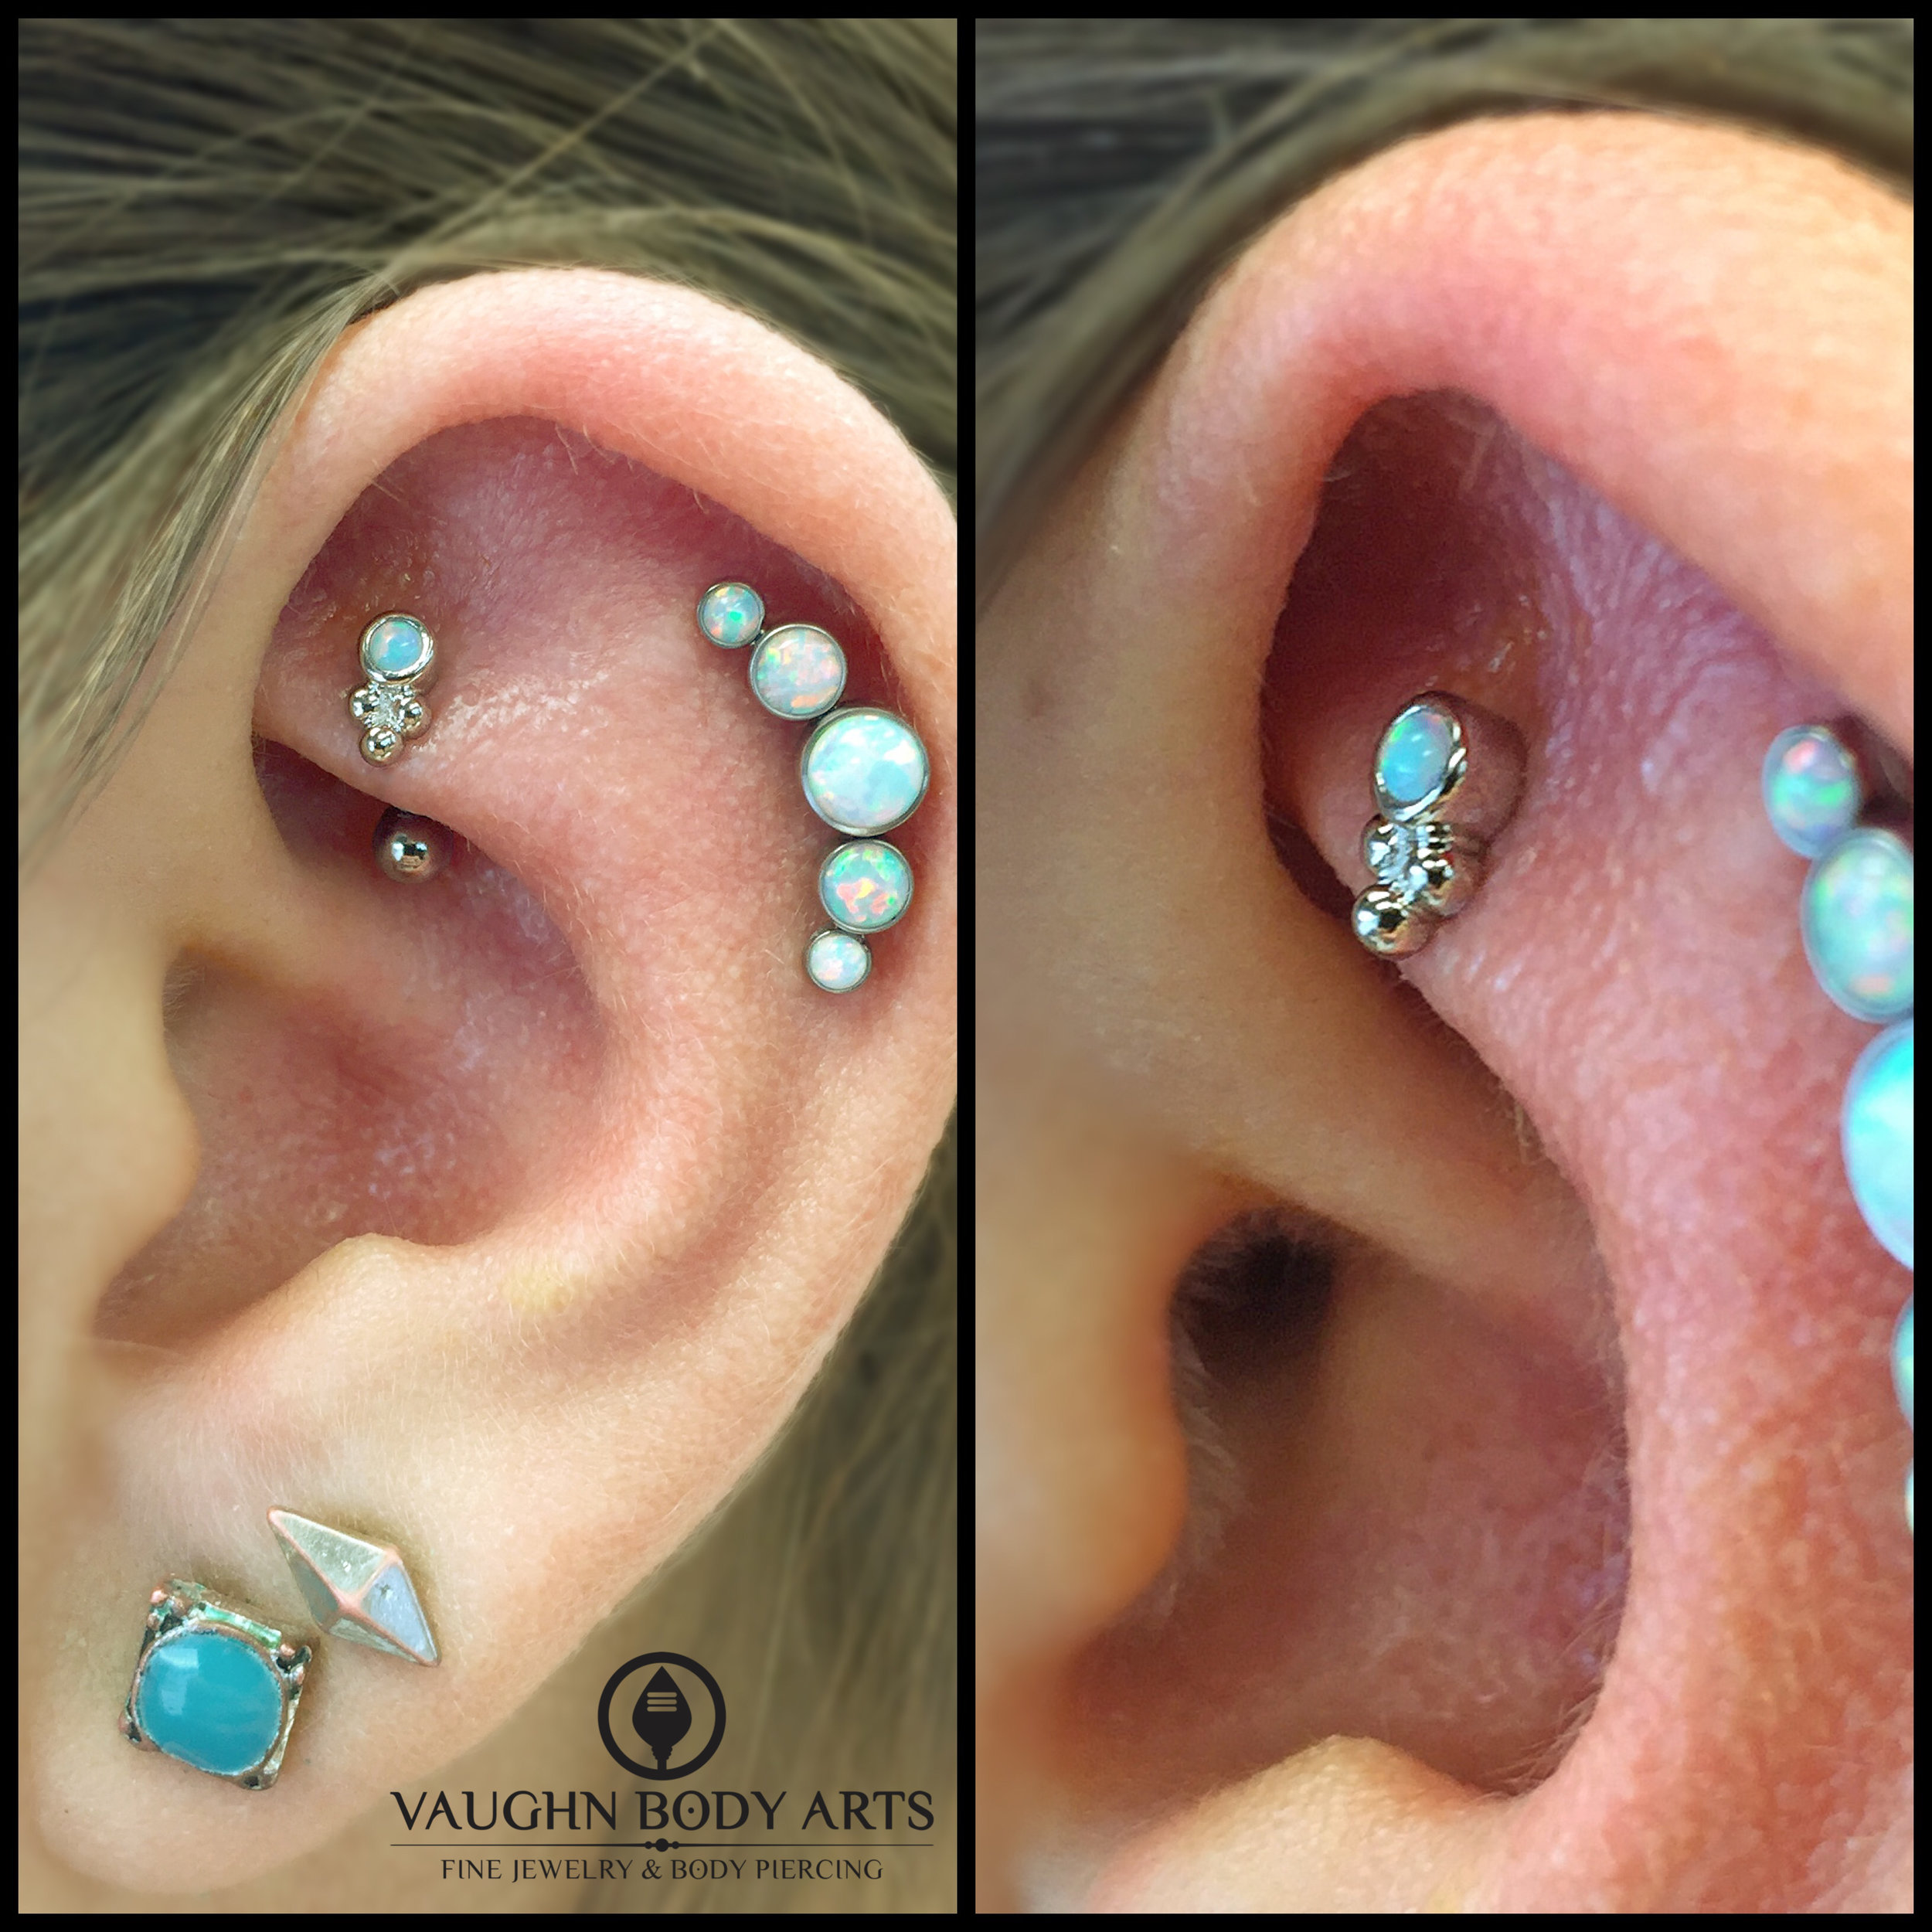 """Rook piercing with an 18k white gold and opal """"Sabrina"""" end, and helix piercing with a titanium gem cluster from Anatometal."""